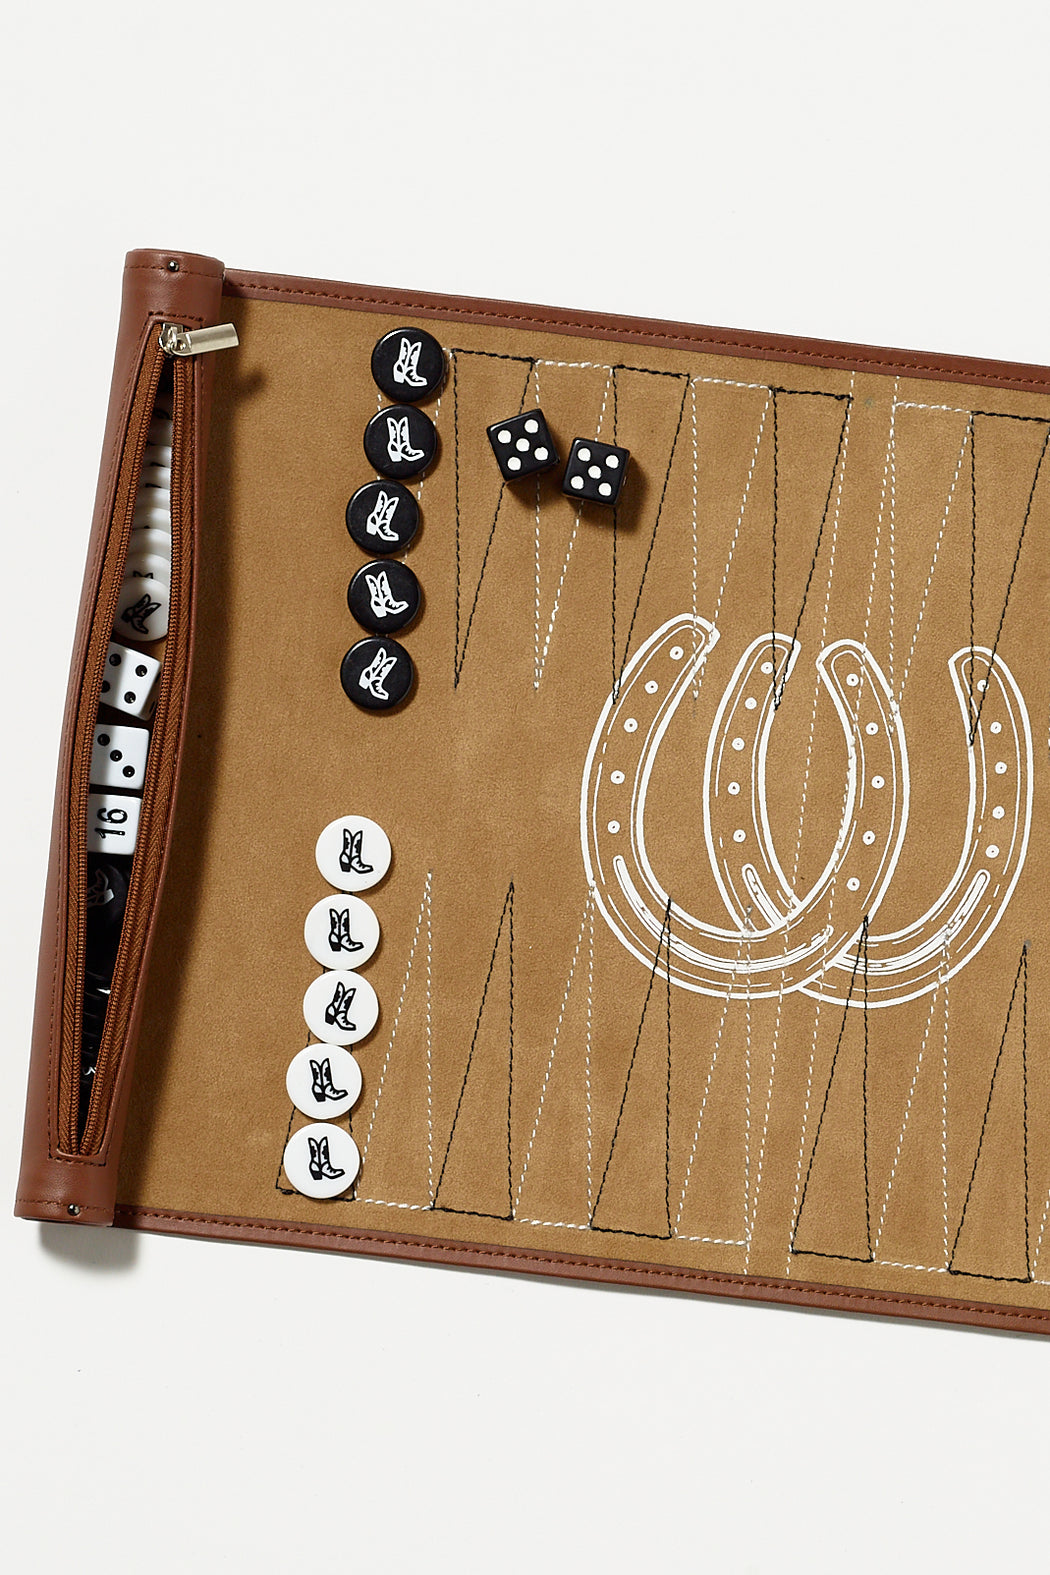 LUCKY BACKGAMMON GAME